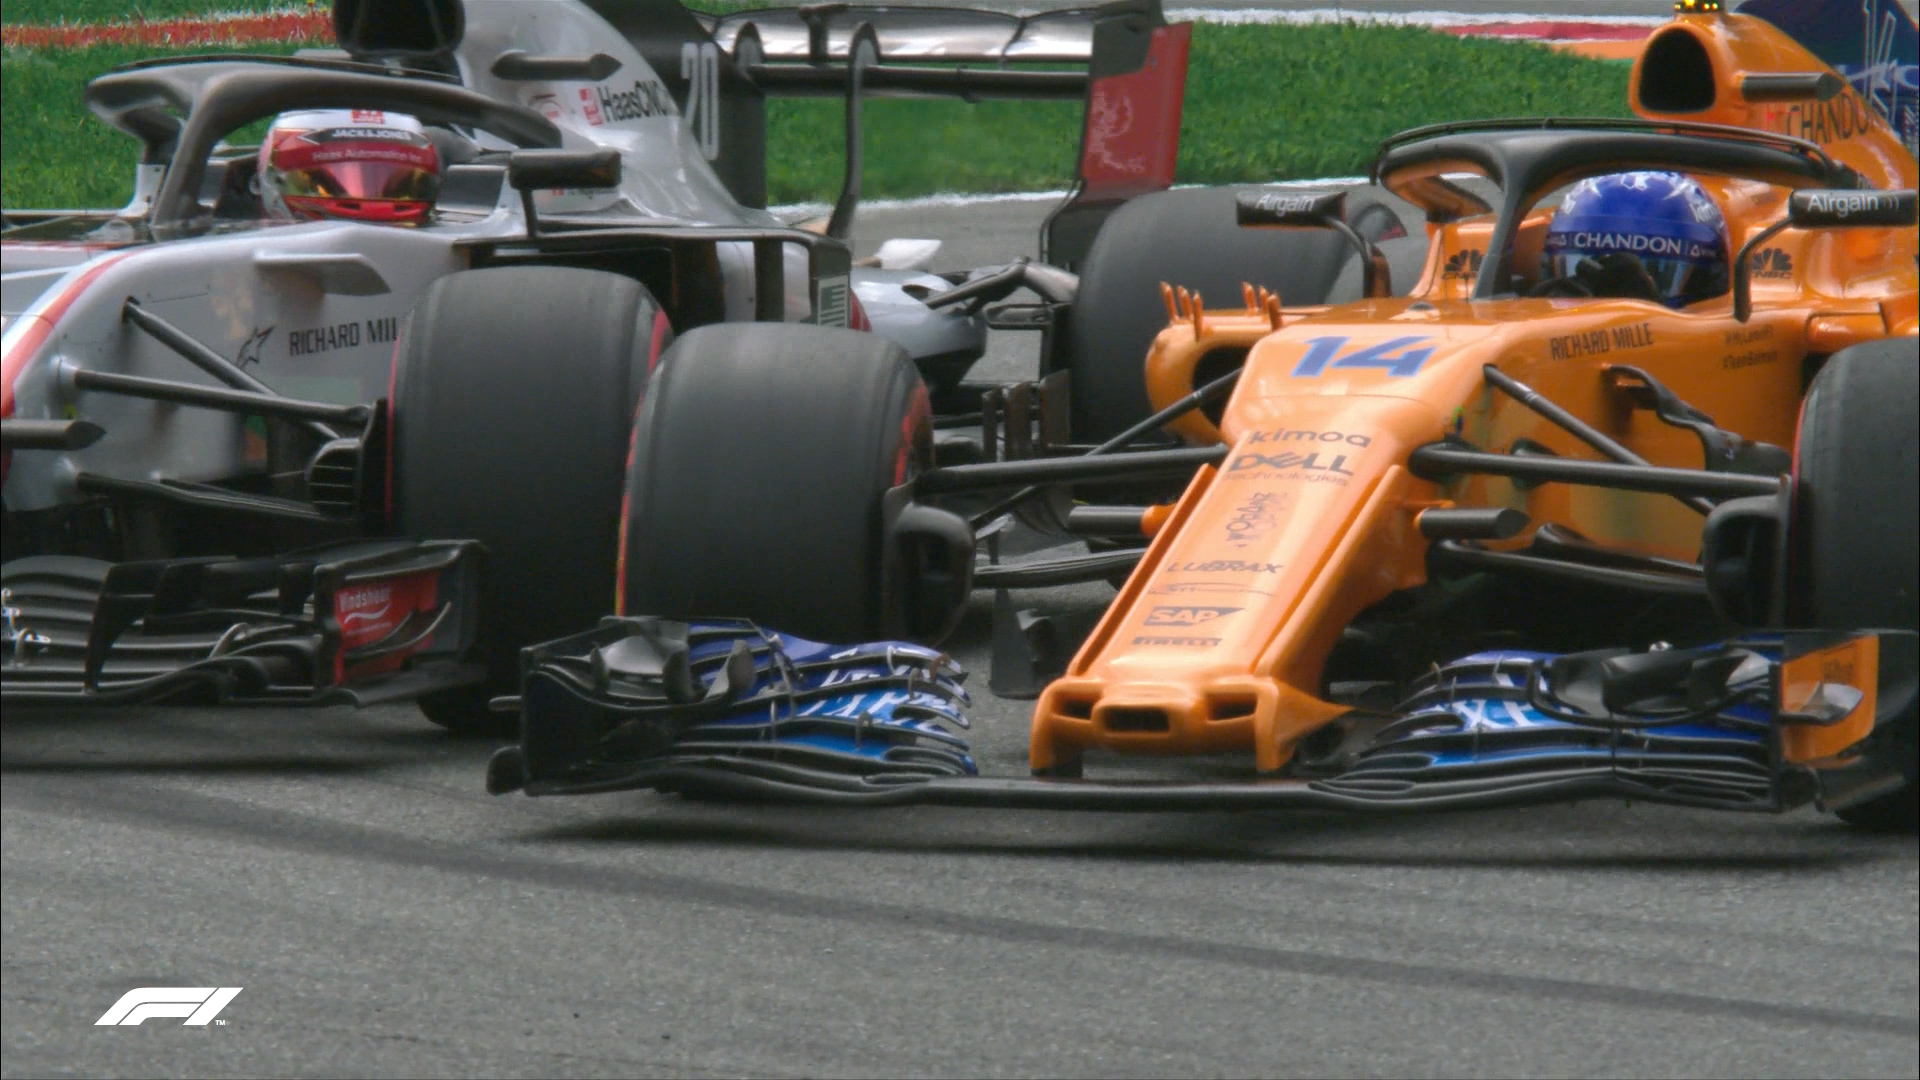 QUALIFYING: Alonso and Magnussen tangle at Turn 1